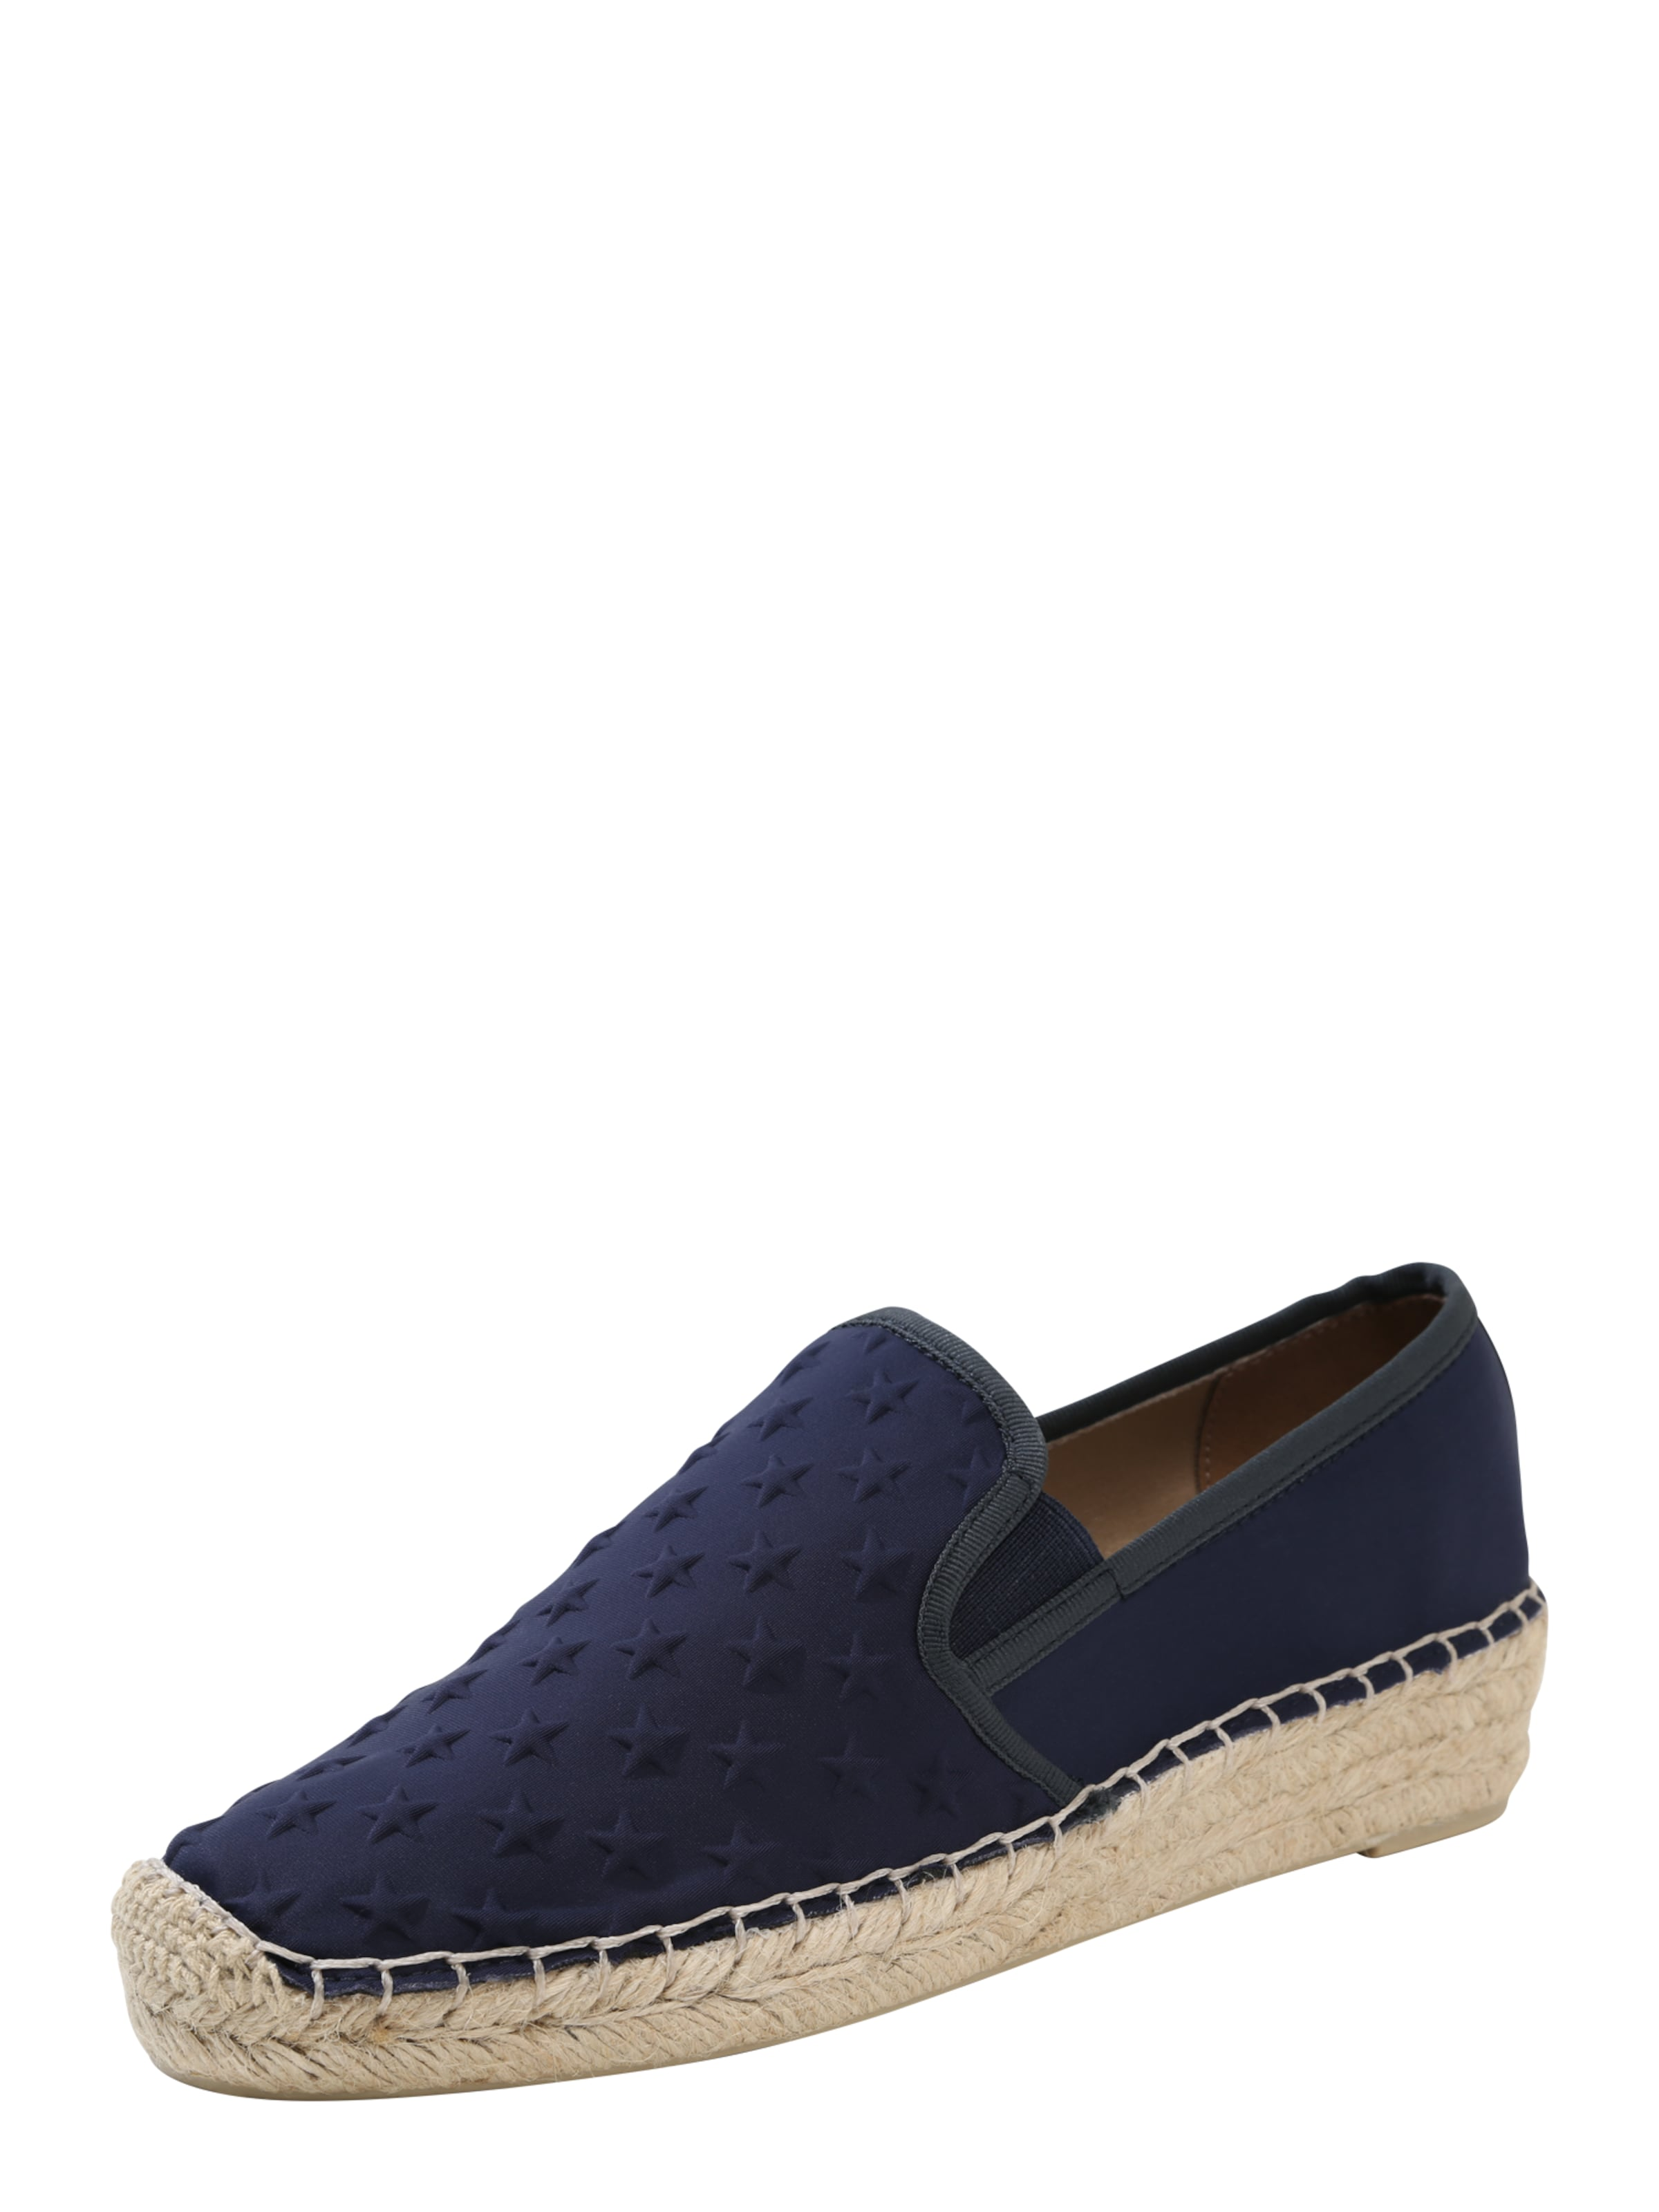 TOMMY HILFIGER Espadrilles  CORPORATE